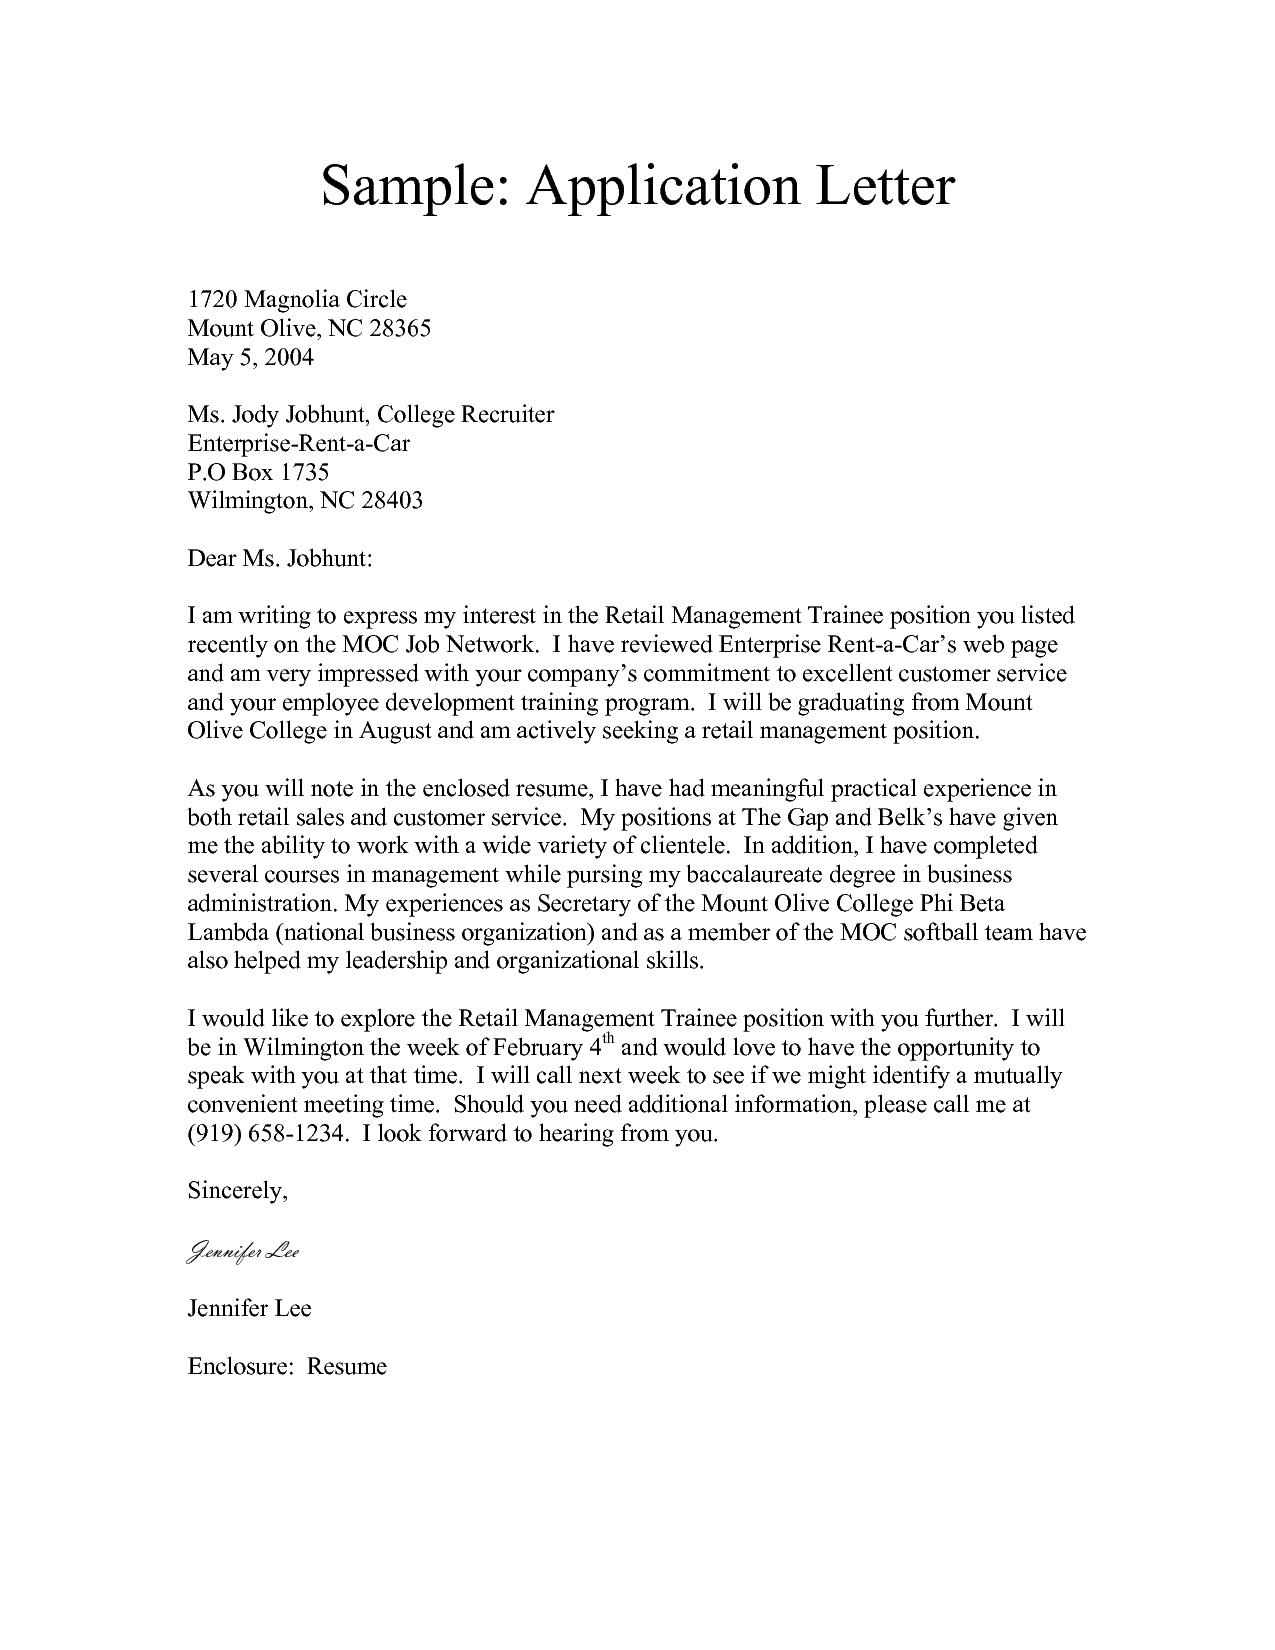 job application covering letter samples